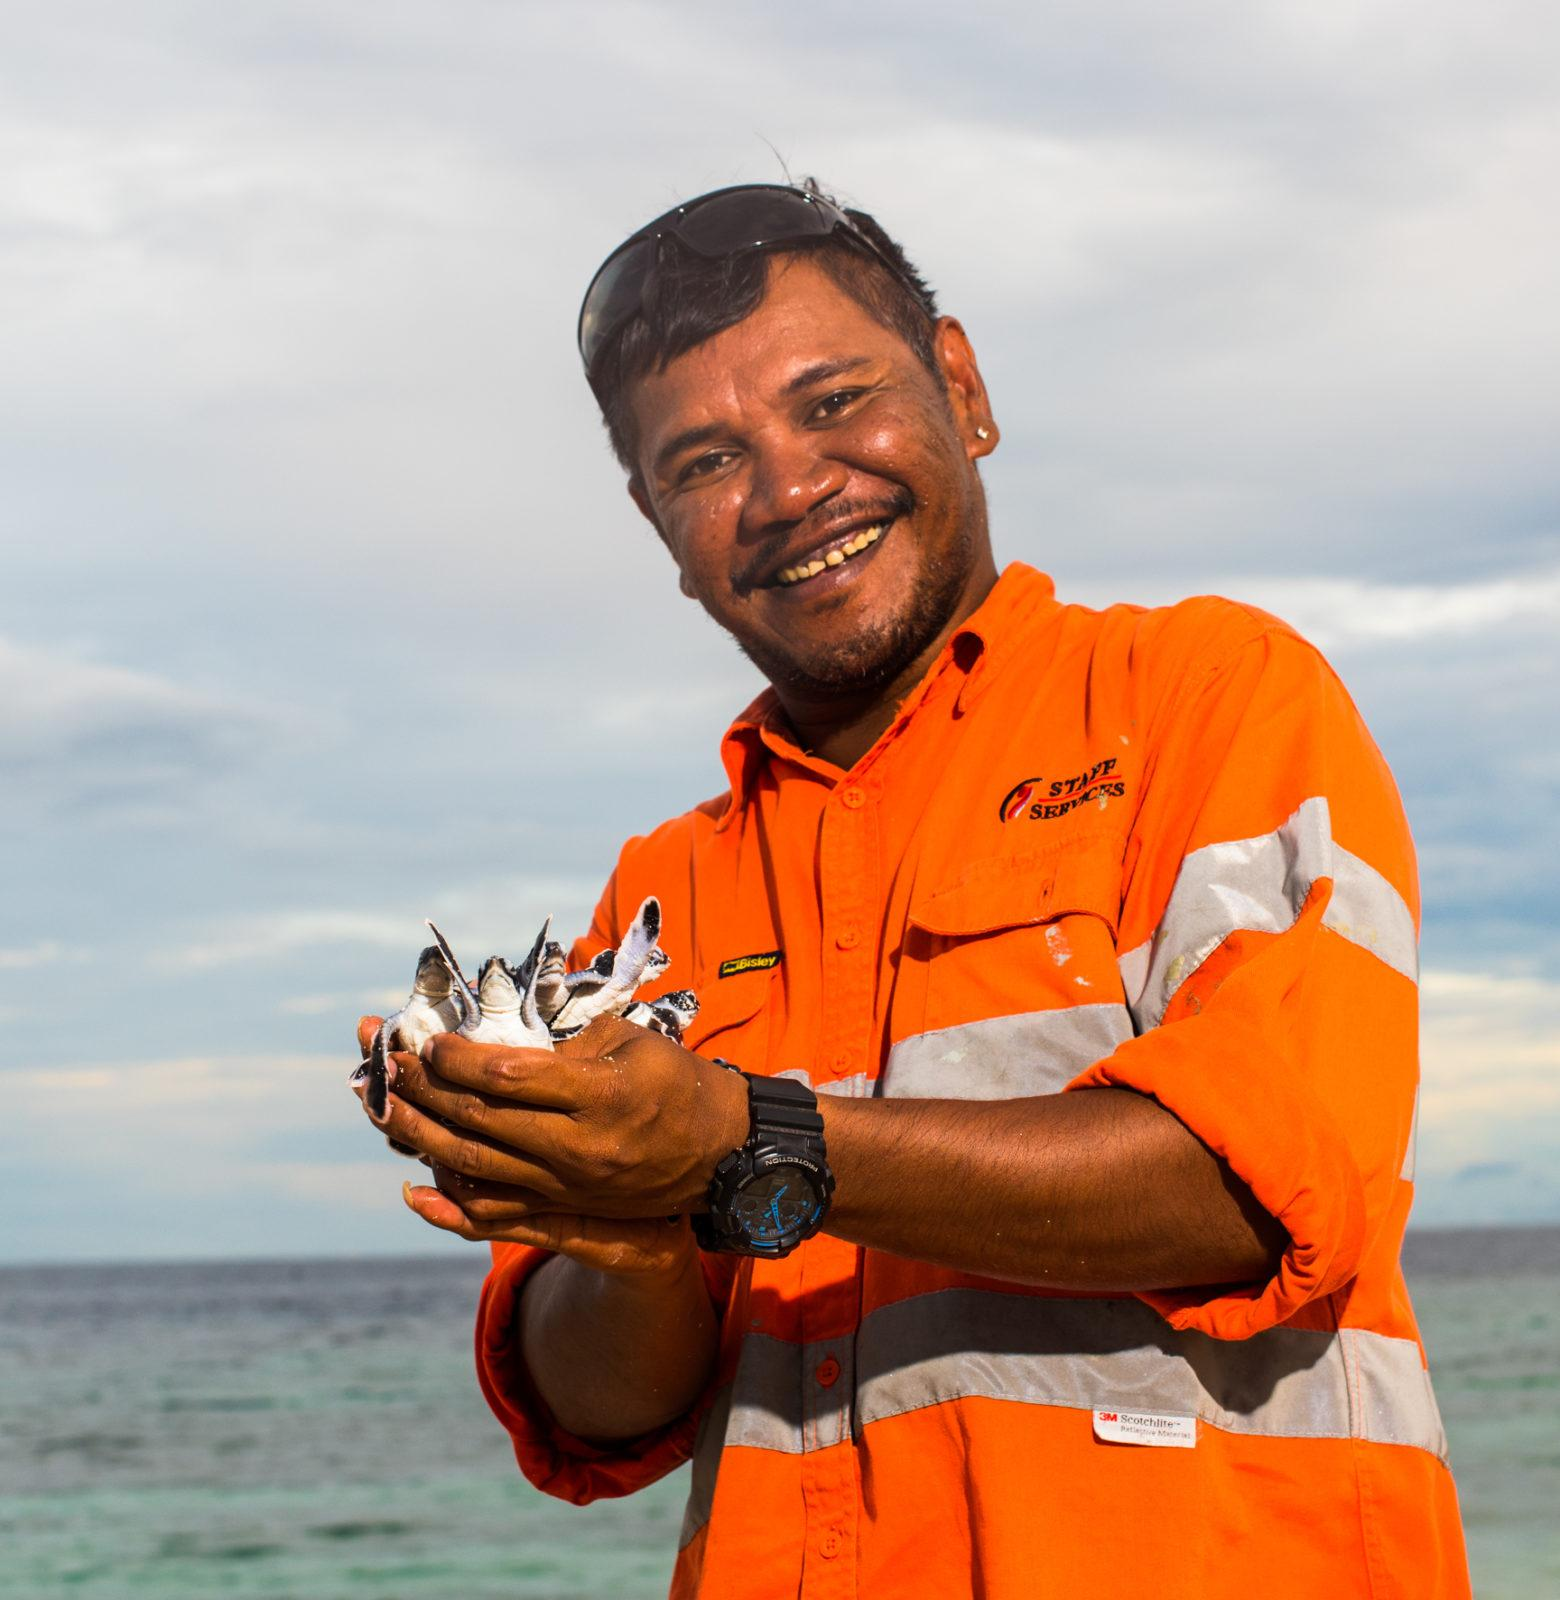 640,000 More endangered Baby Turtles on the Great Barrier Reef